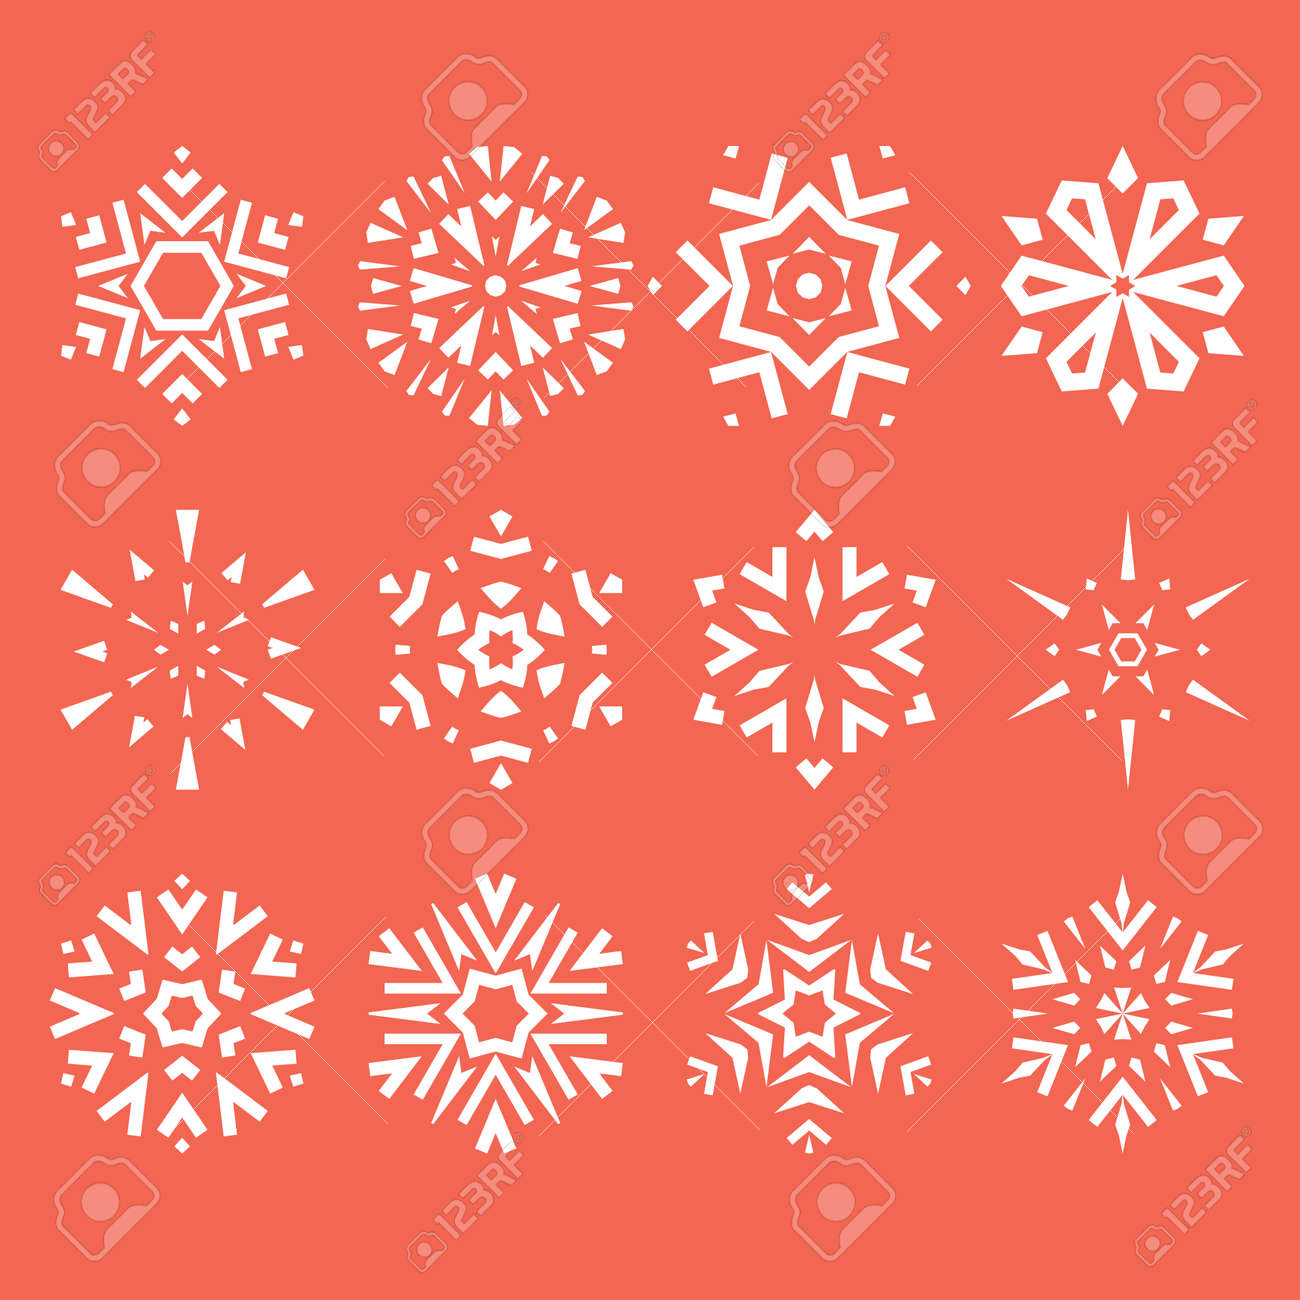 Snowflakes icon collection. Graphic modern pink and white ornament - 170173017